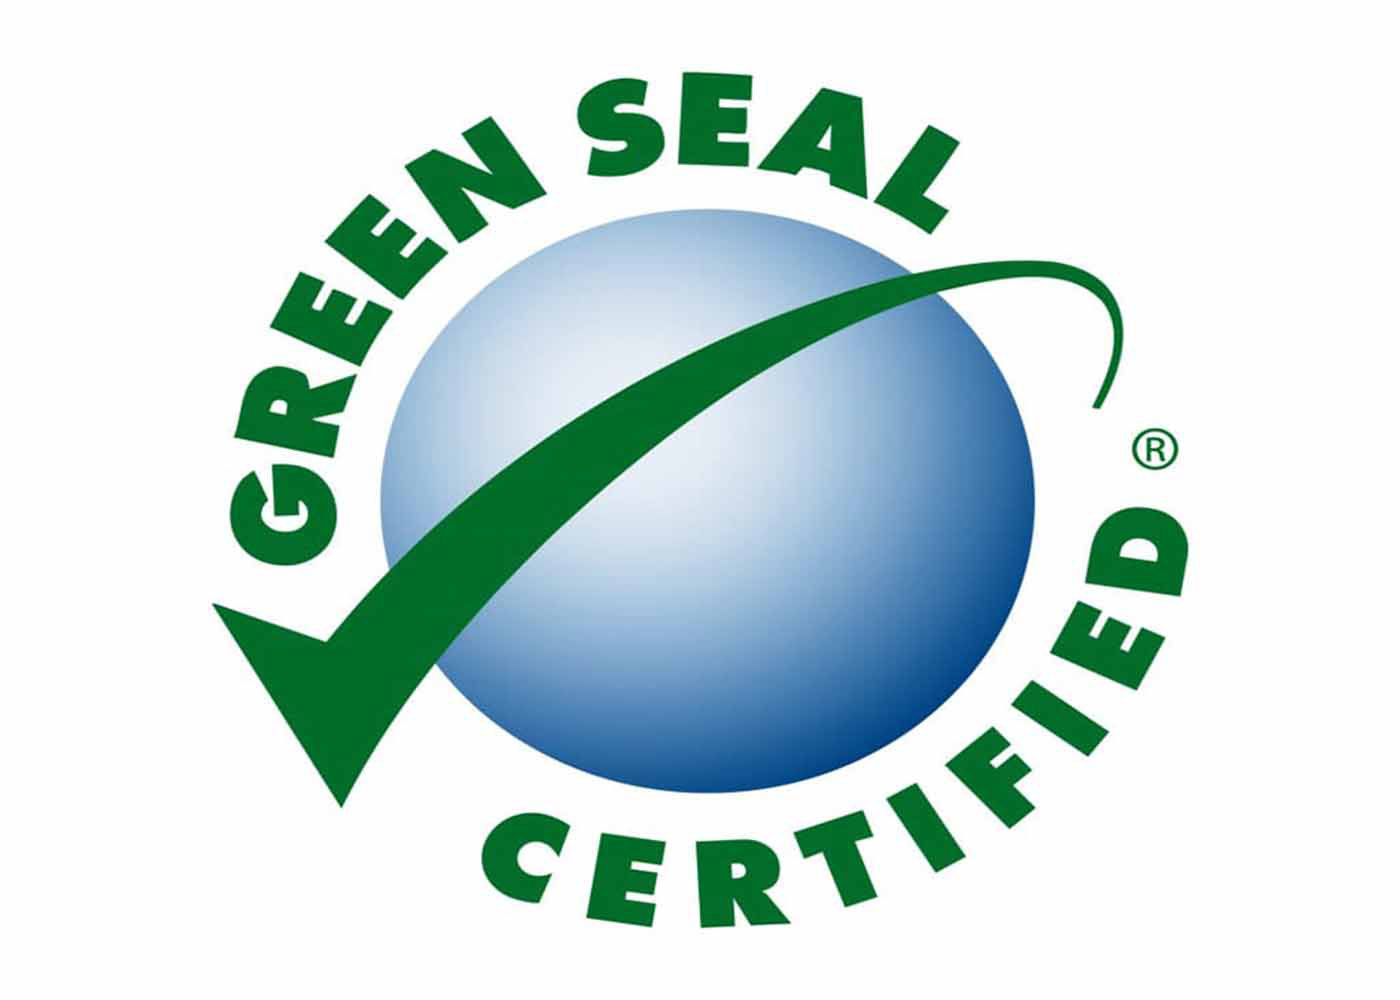 Purchasing-Cleaning and Janitorial Supplies-Green Seal: Green Seal's logo. Features a blue spherical object that relates to Planet Earth with a green check-mark surrounding it.